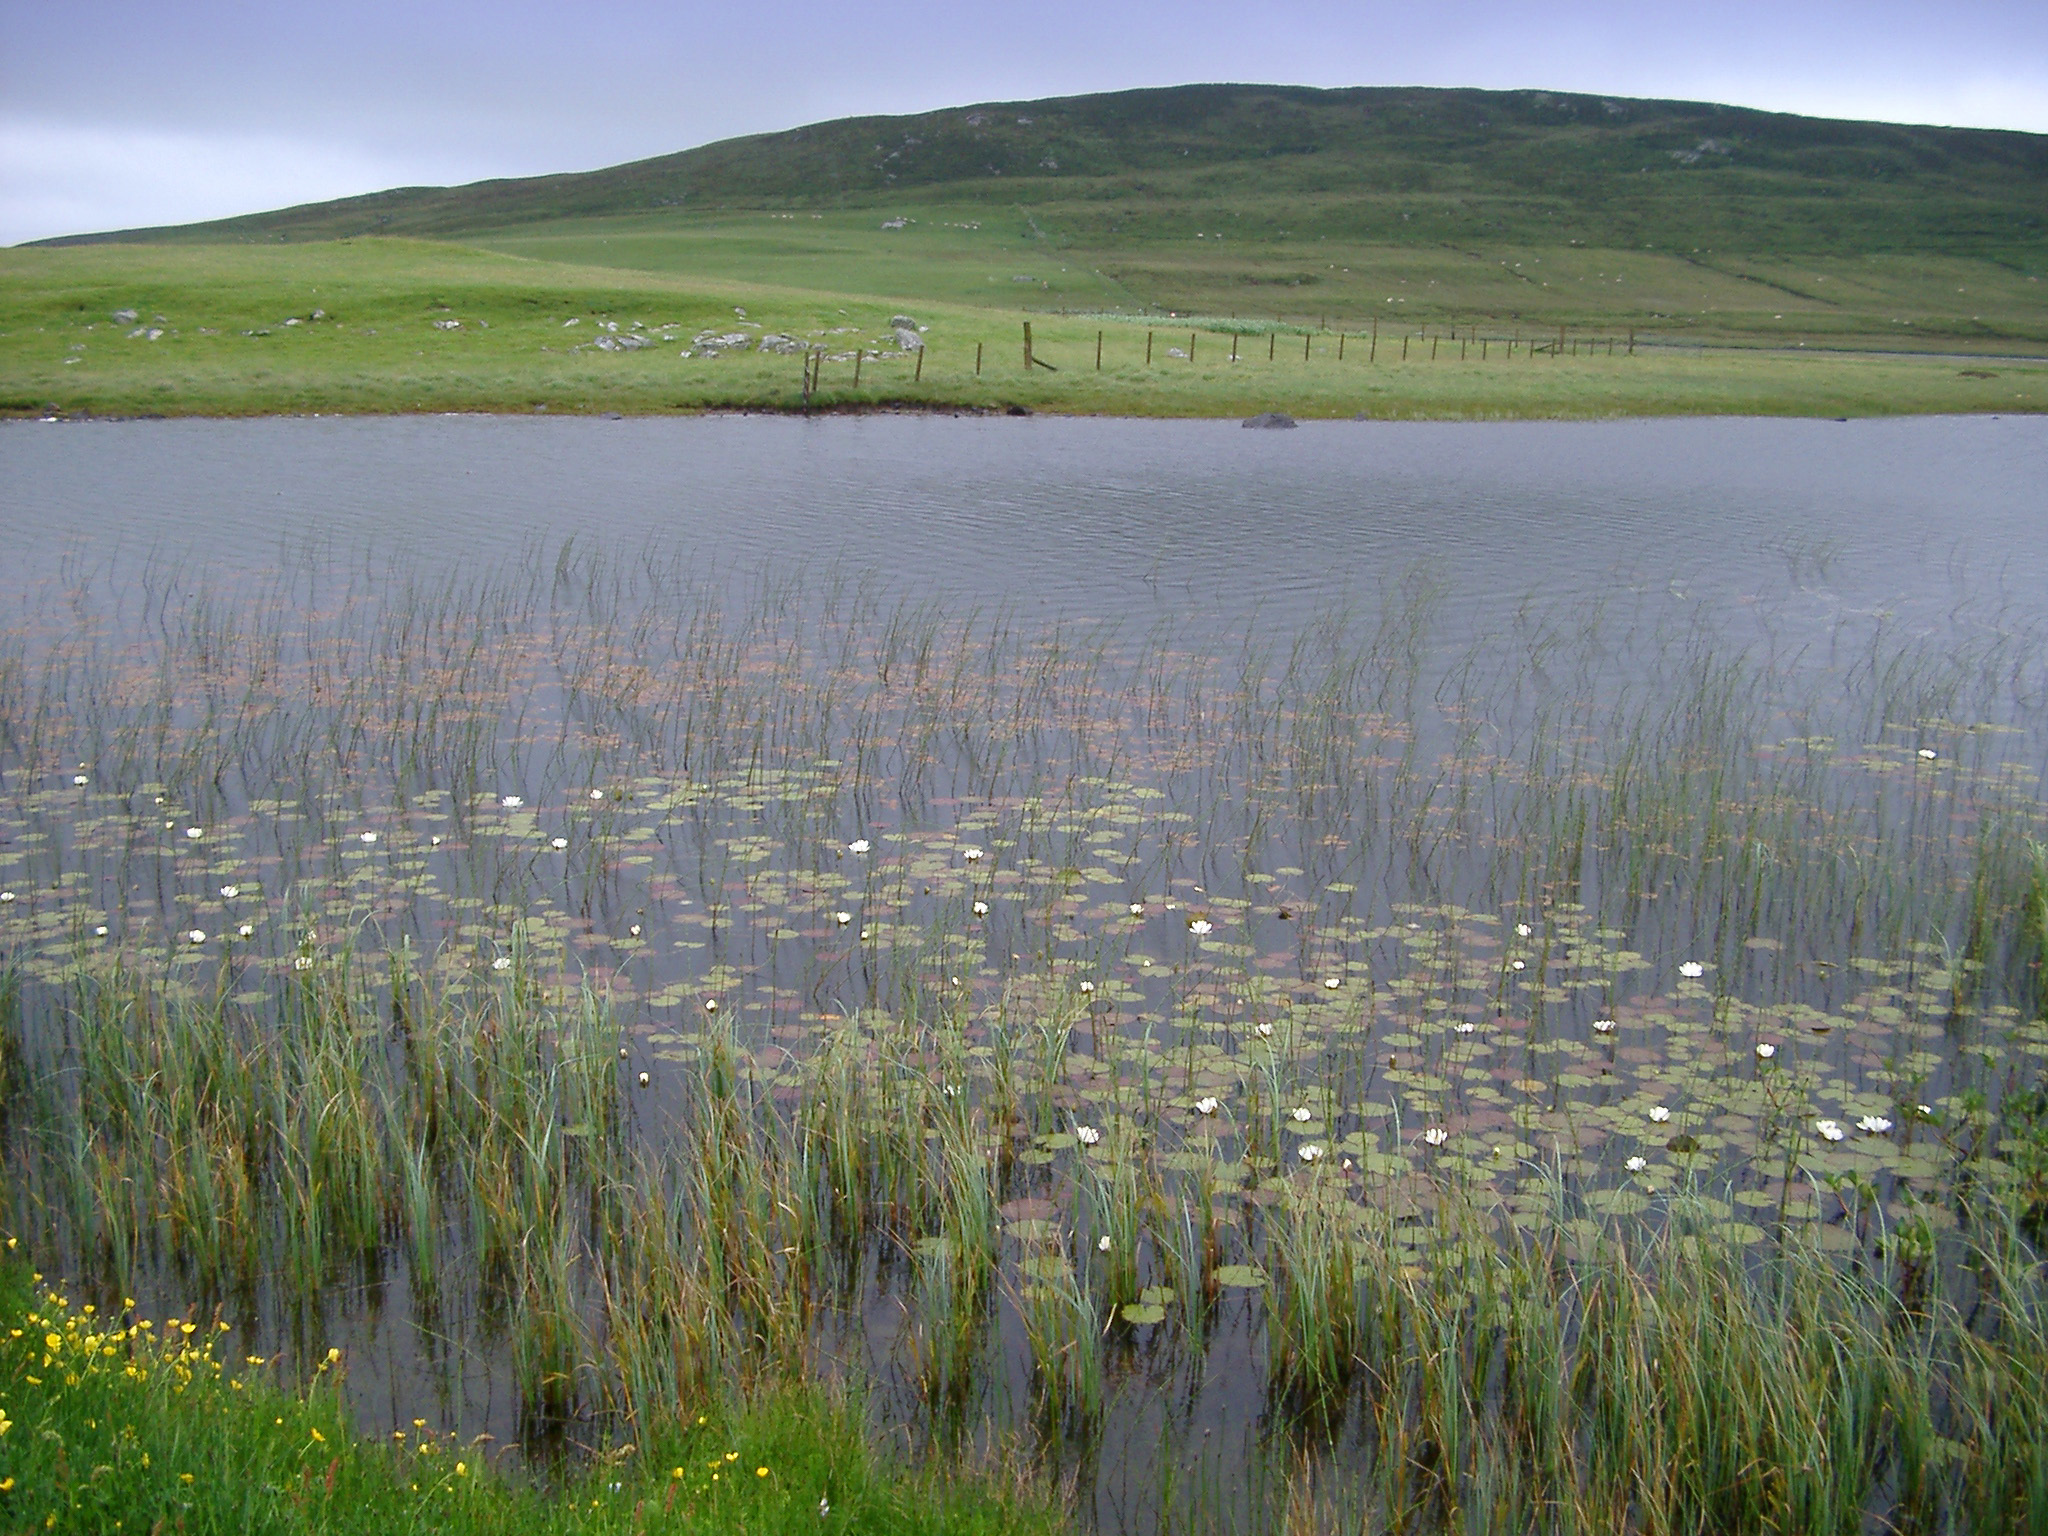 Marsh on the edge of a loch in Scotland with coastal grass and water lilies providing a unique natural habitat, scenic landscape view